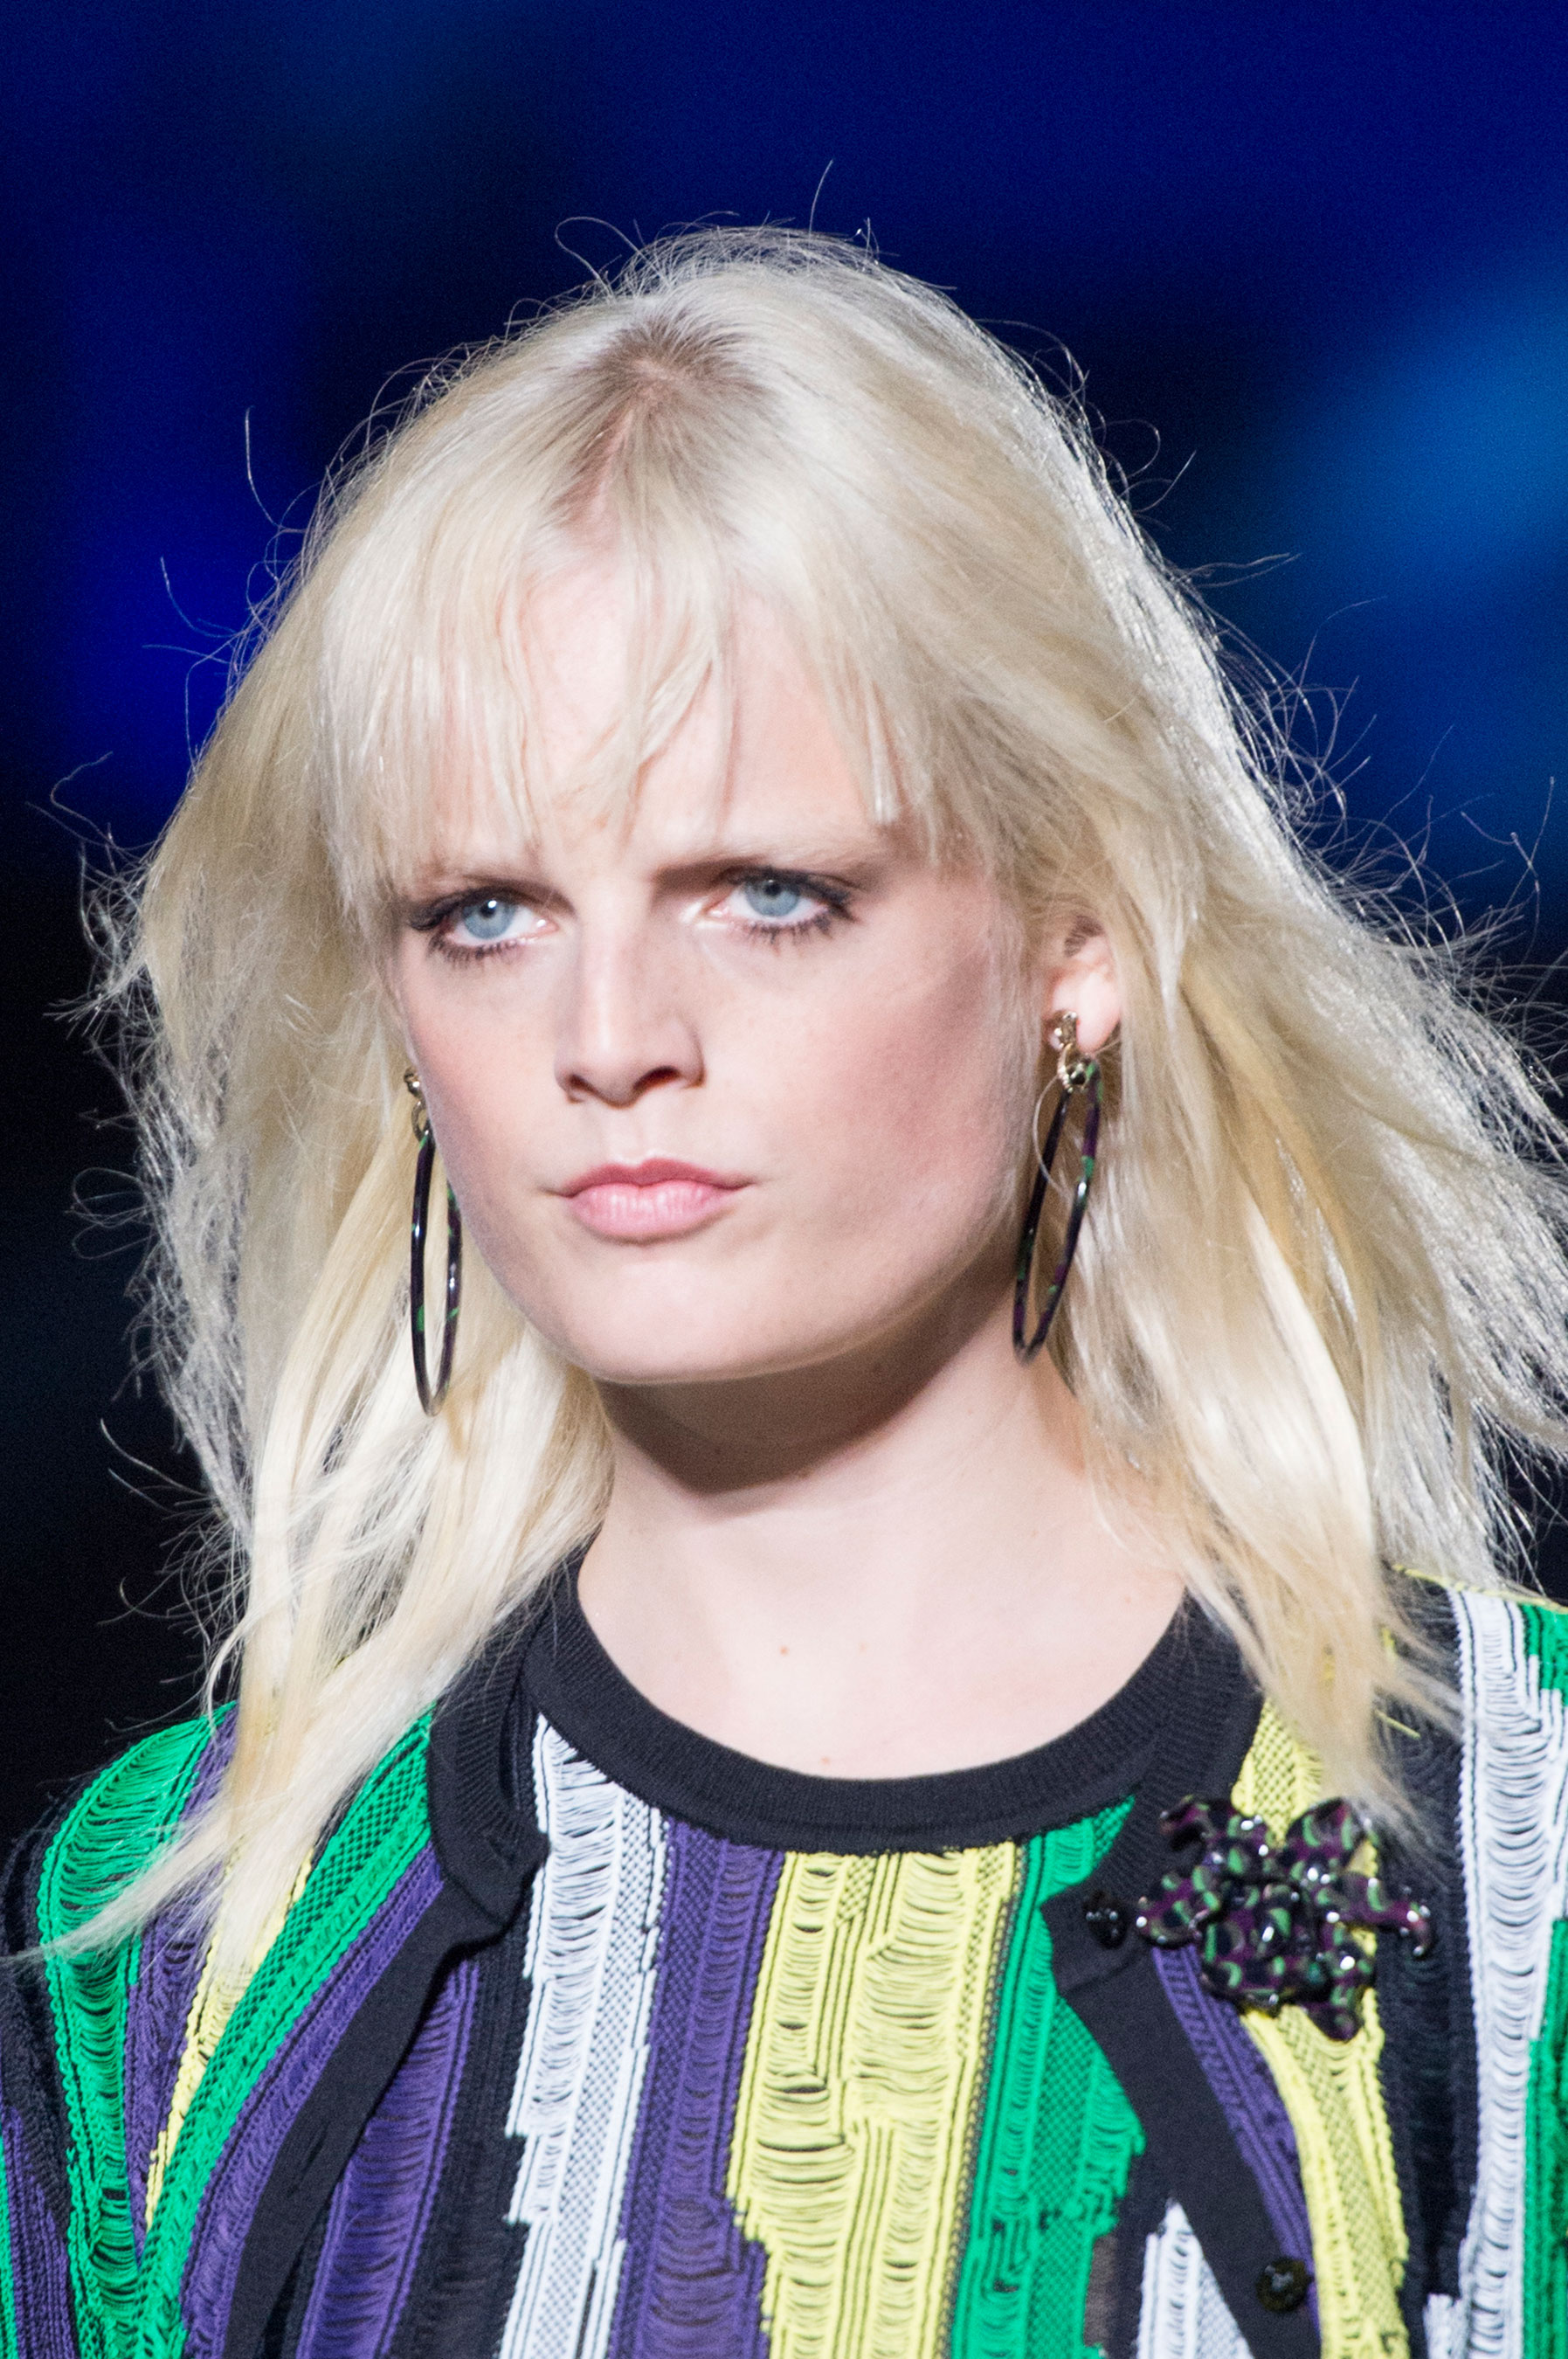 versace-runway-beauty-spring-2016-fashion-show-the-impression-013